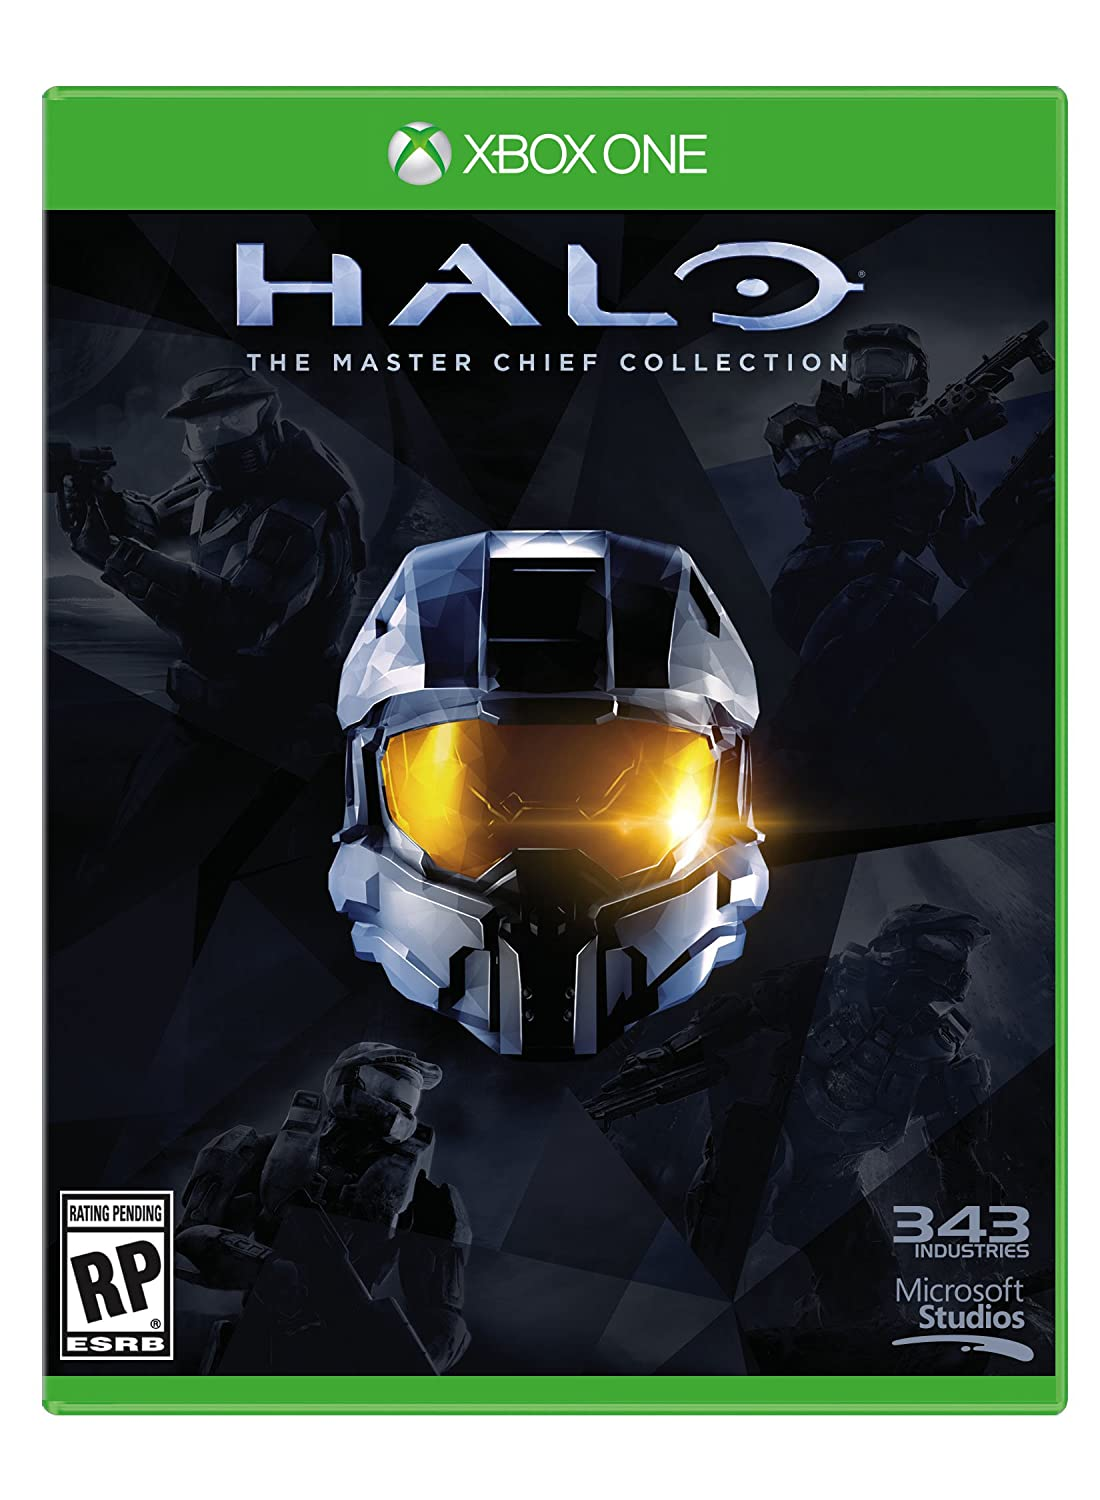 Halo: The Master Chief Collection 1080p Screens and Box ...